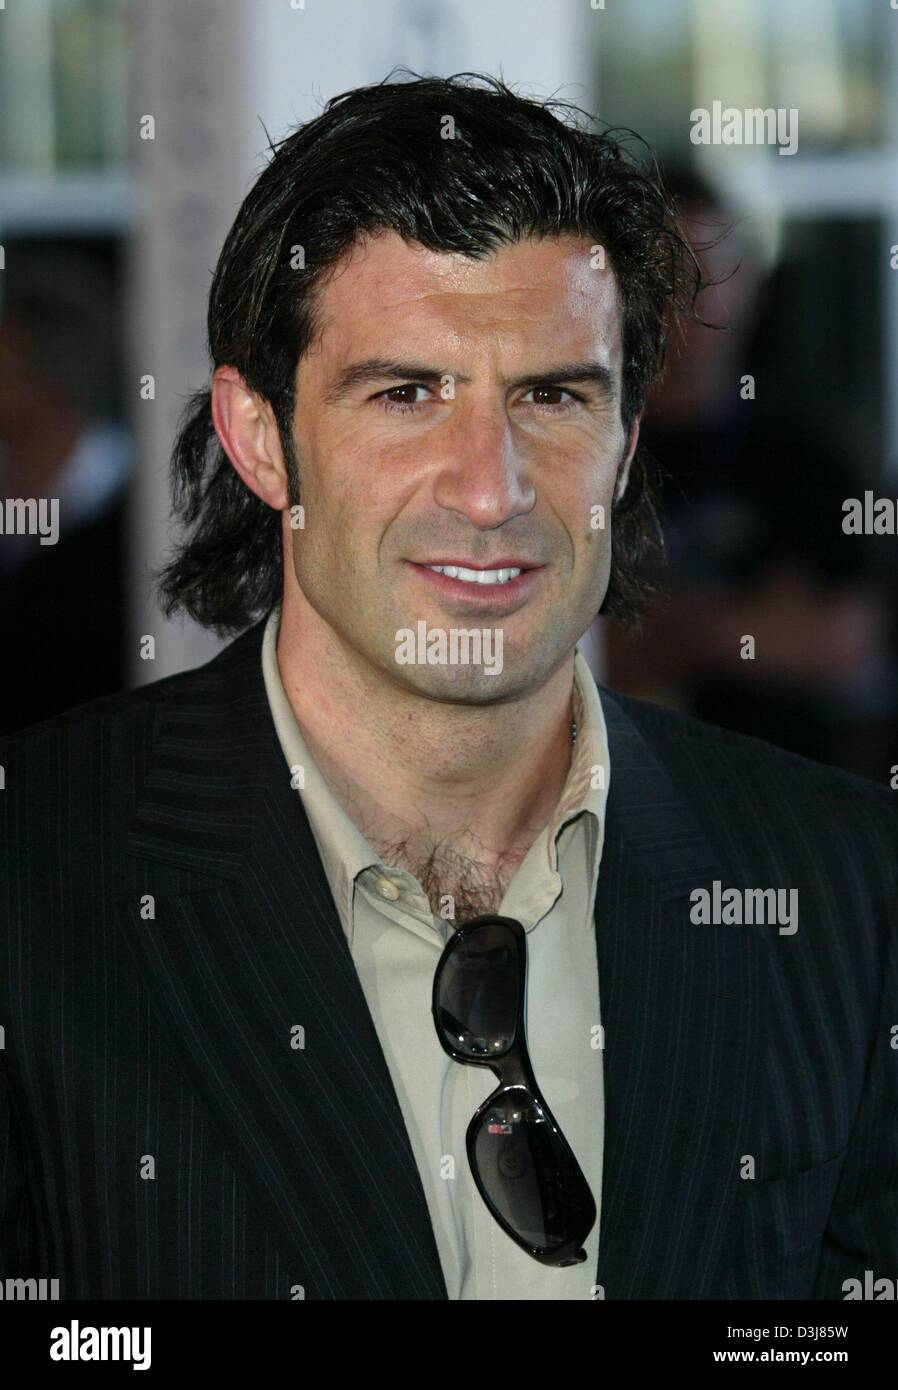 dpa Luis Figo Portuguese soccer star and player for the